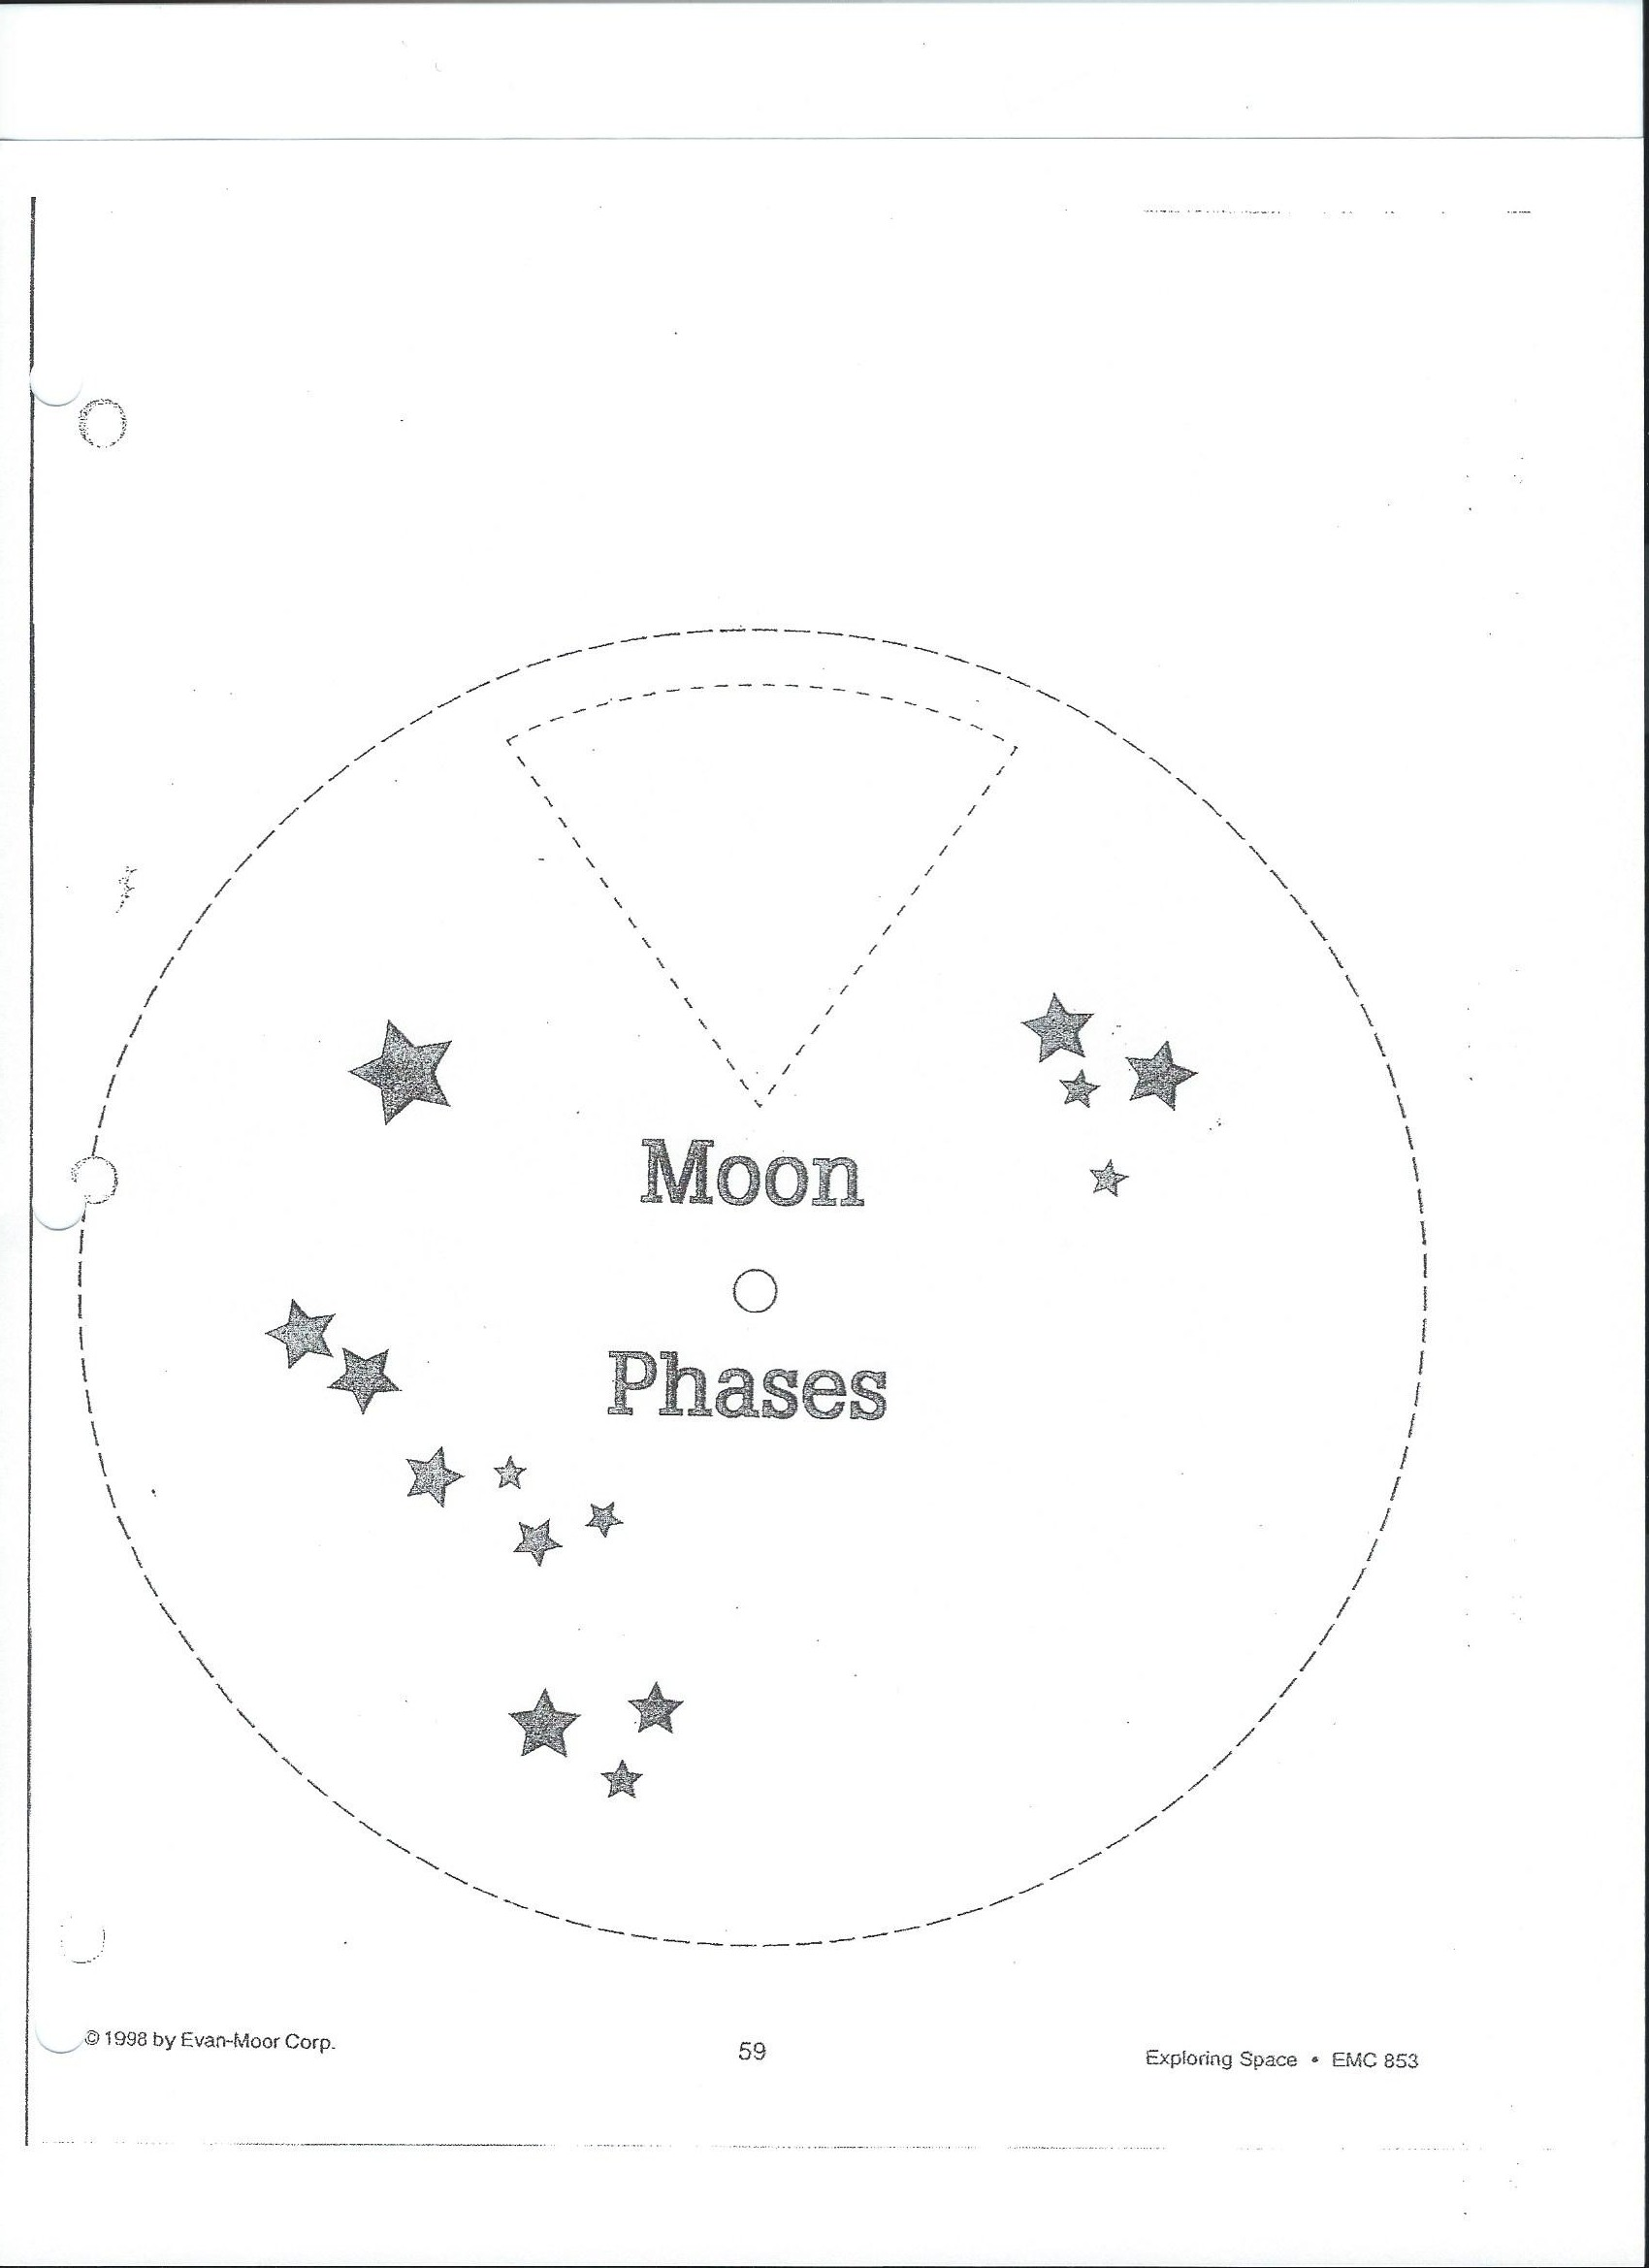 worksheet Moon Phases Worksheets show document 2 1 moon phases worksheet a